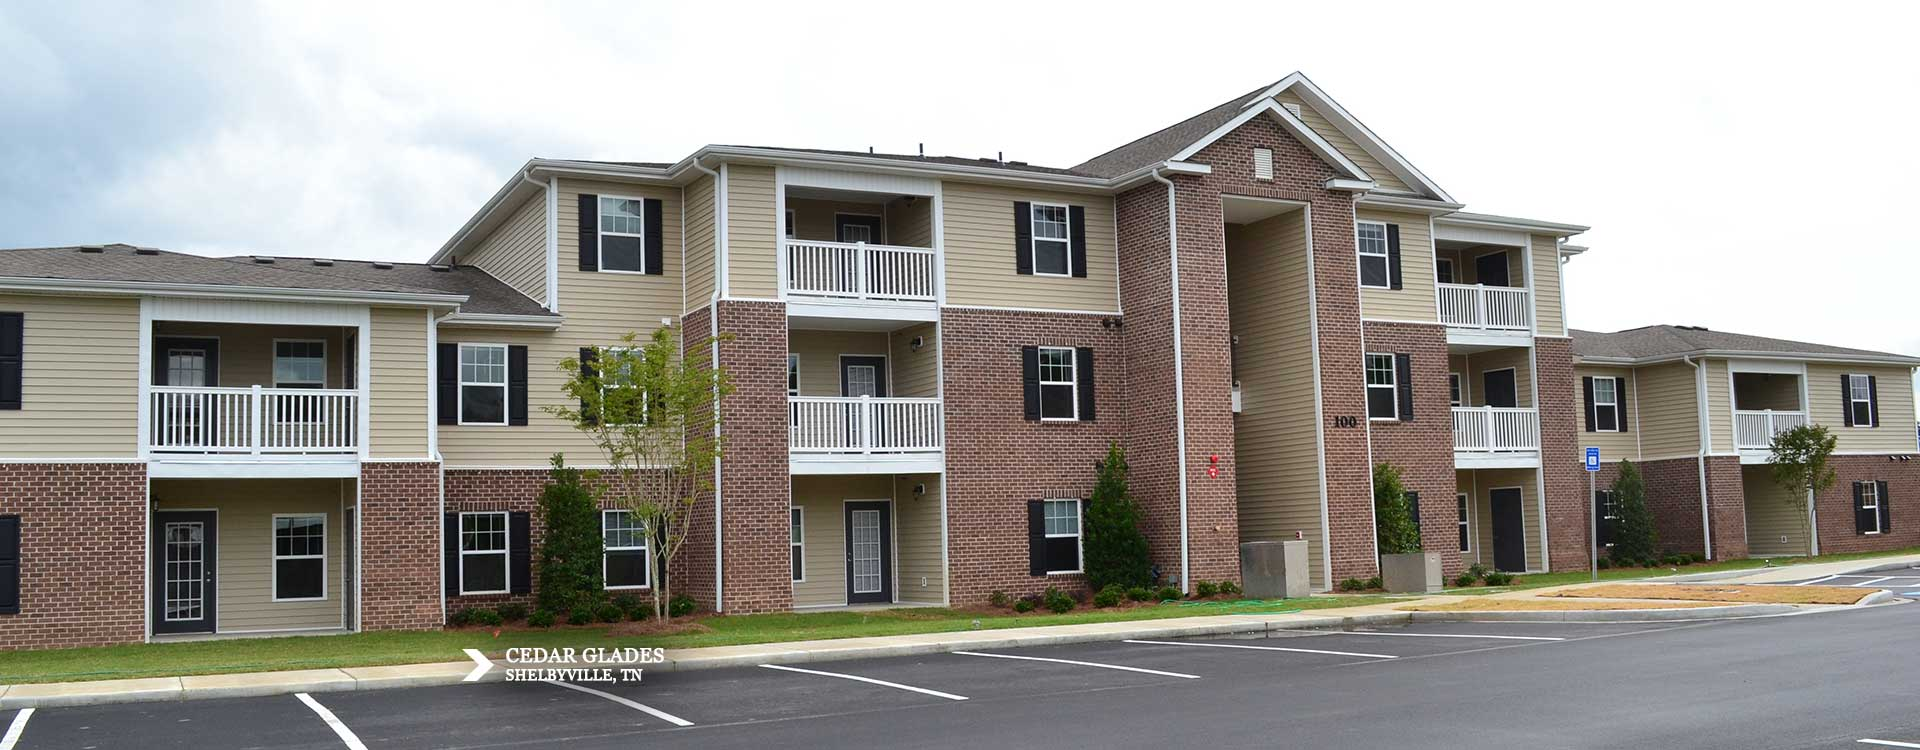 Gateway Management Company, LLC (Corp. Office) | Apartments for ...